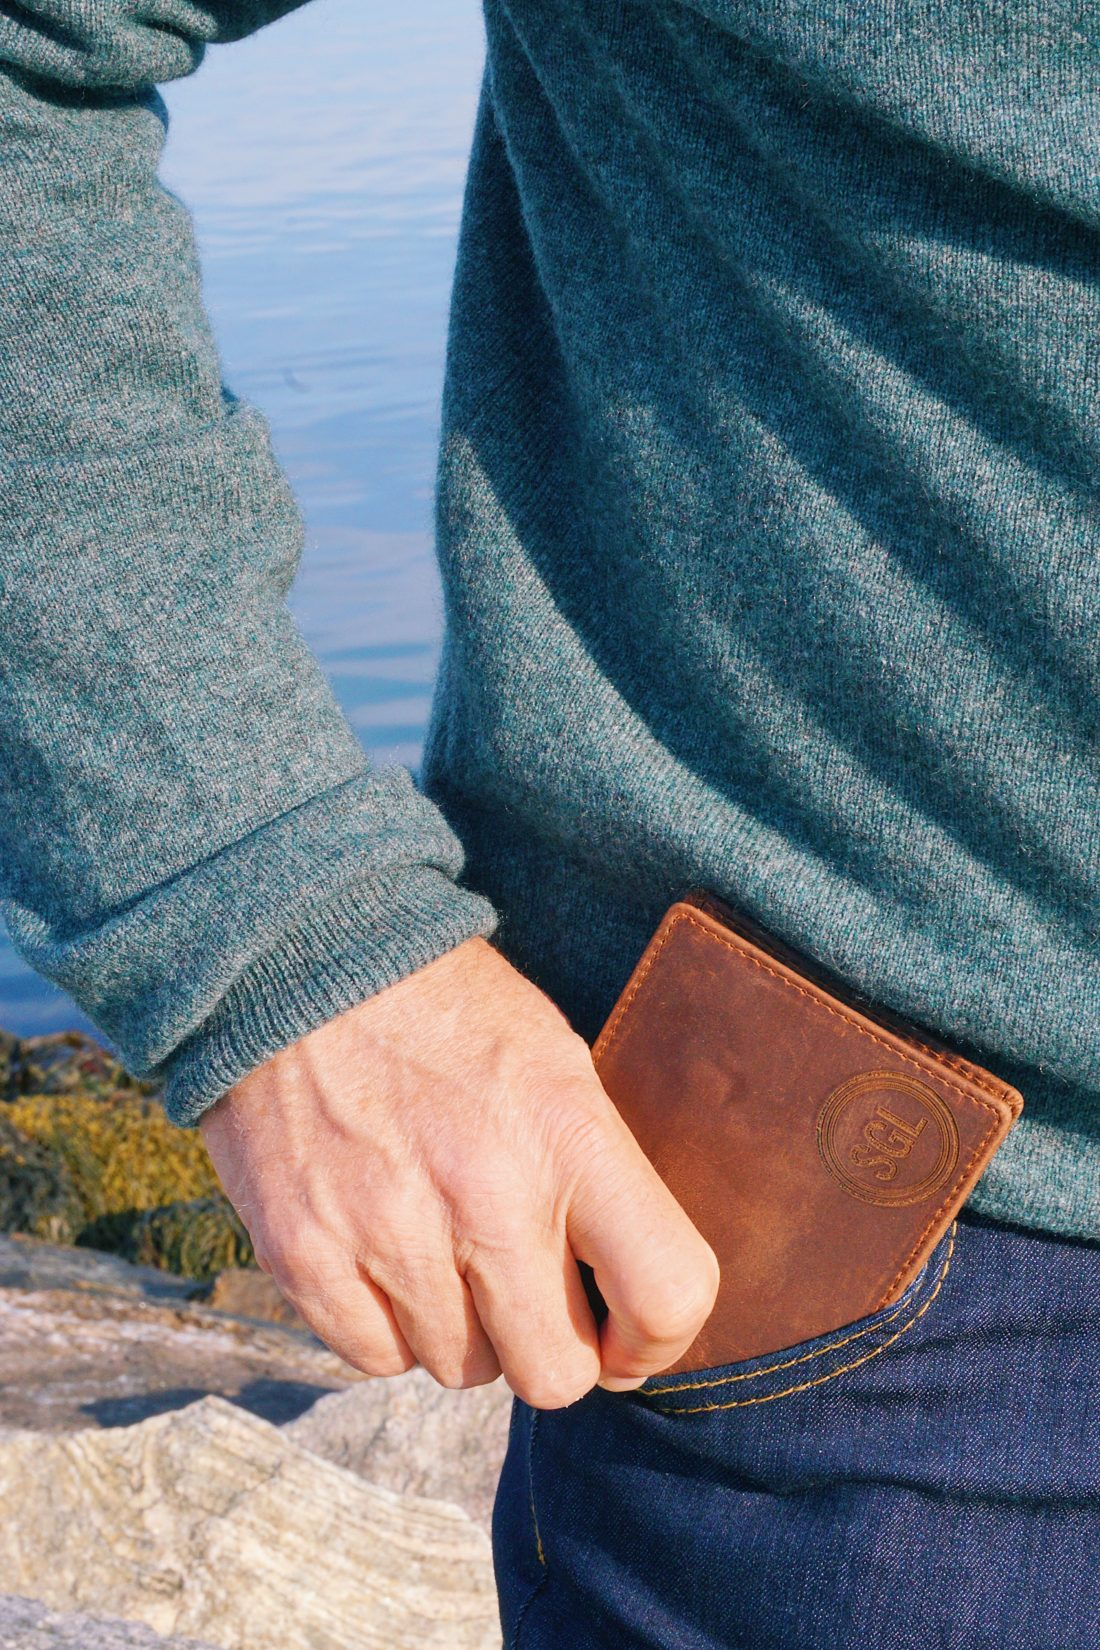 Father's Day gift with personalized wallet from Grain and Oak